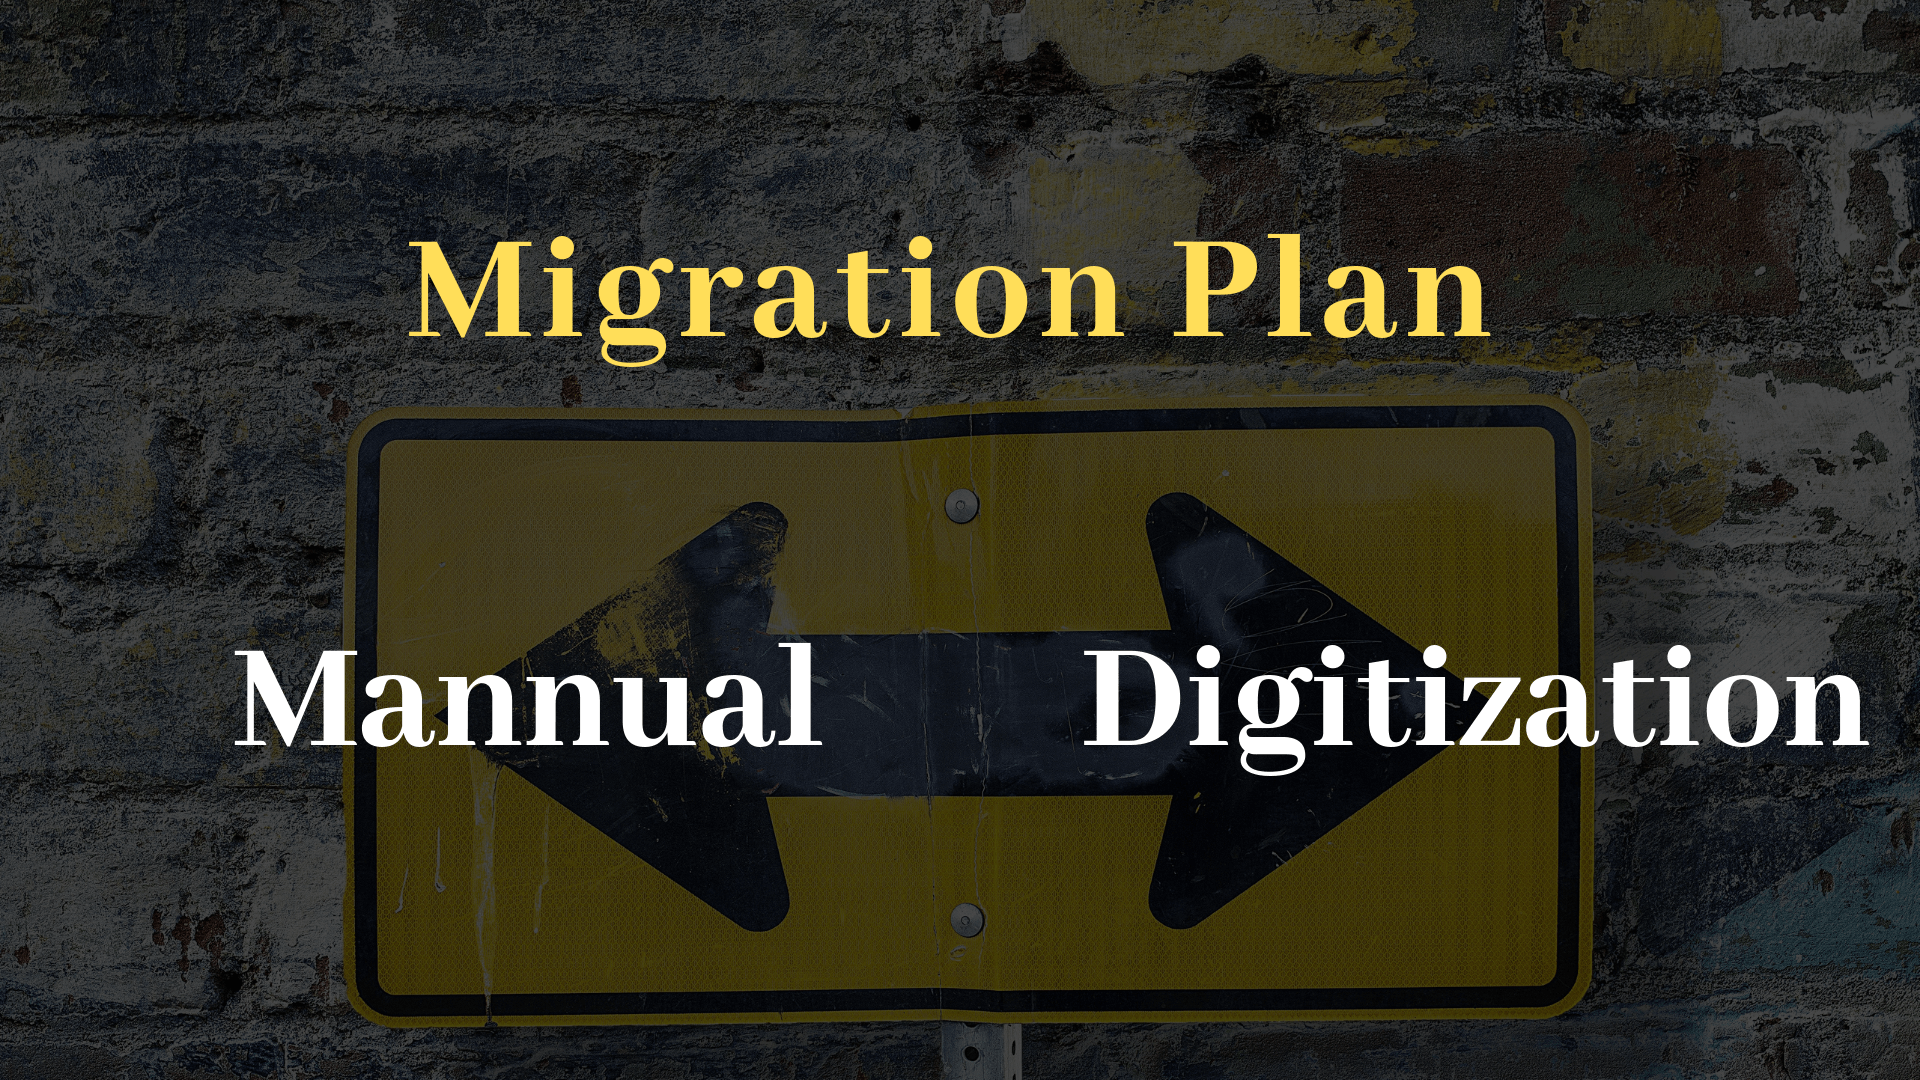 Migration Plan TRooTech Business Solutions